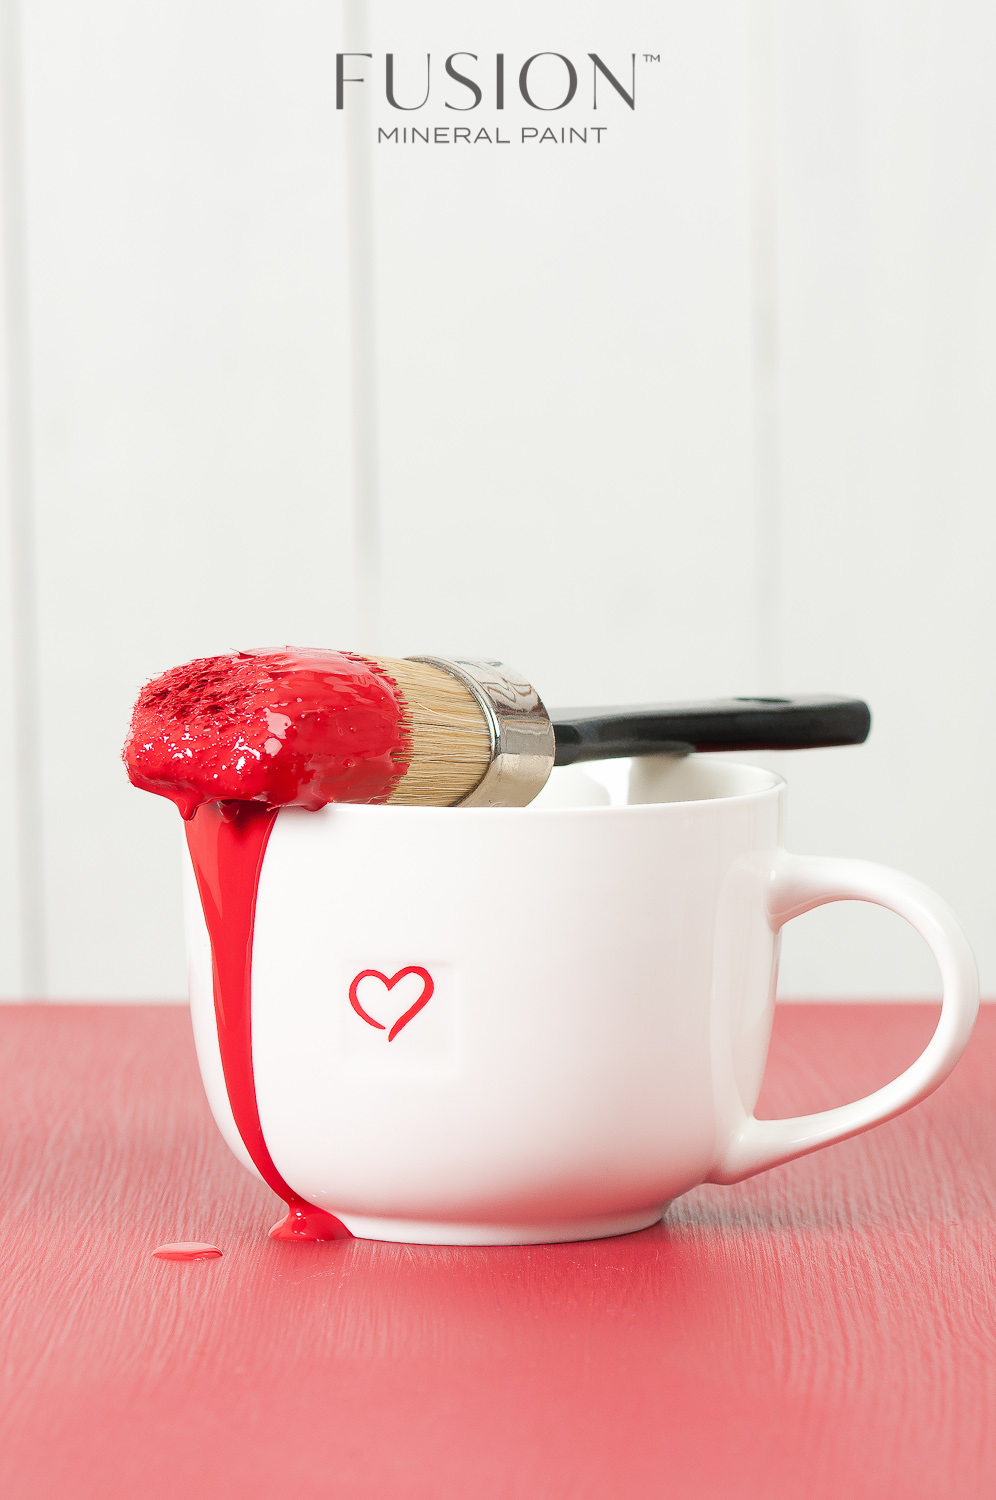 Fusion Mineral Paint in Fort York Red is the perfect colour for Valentine's Day!